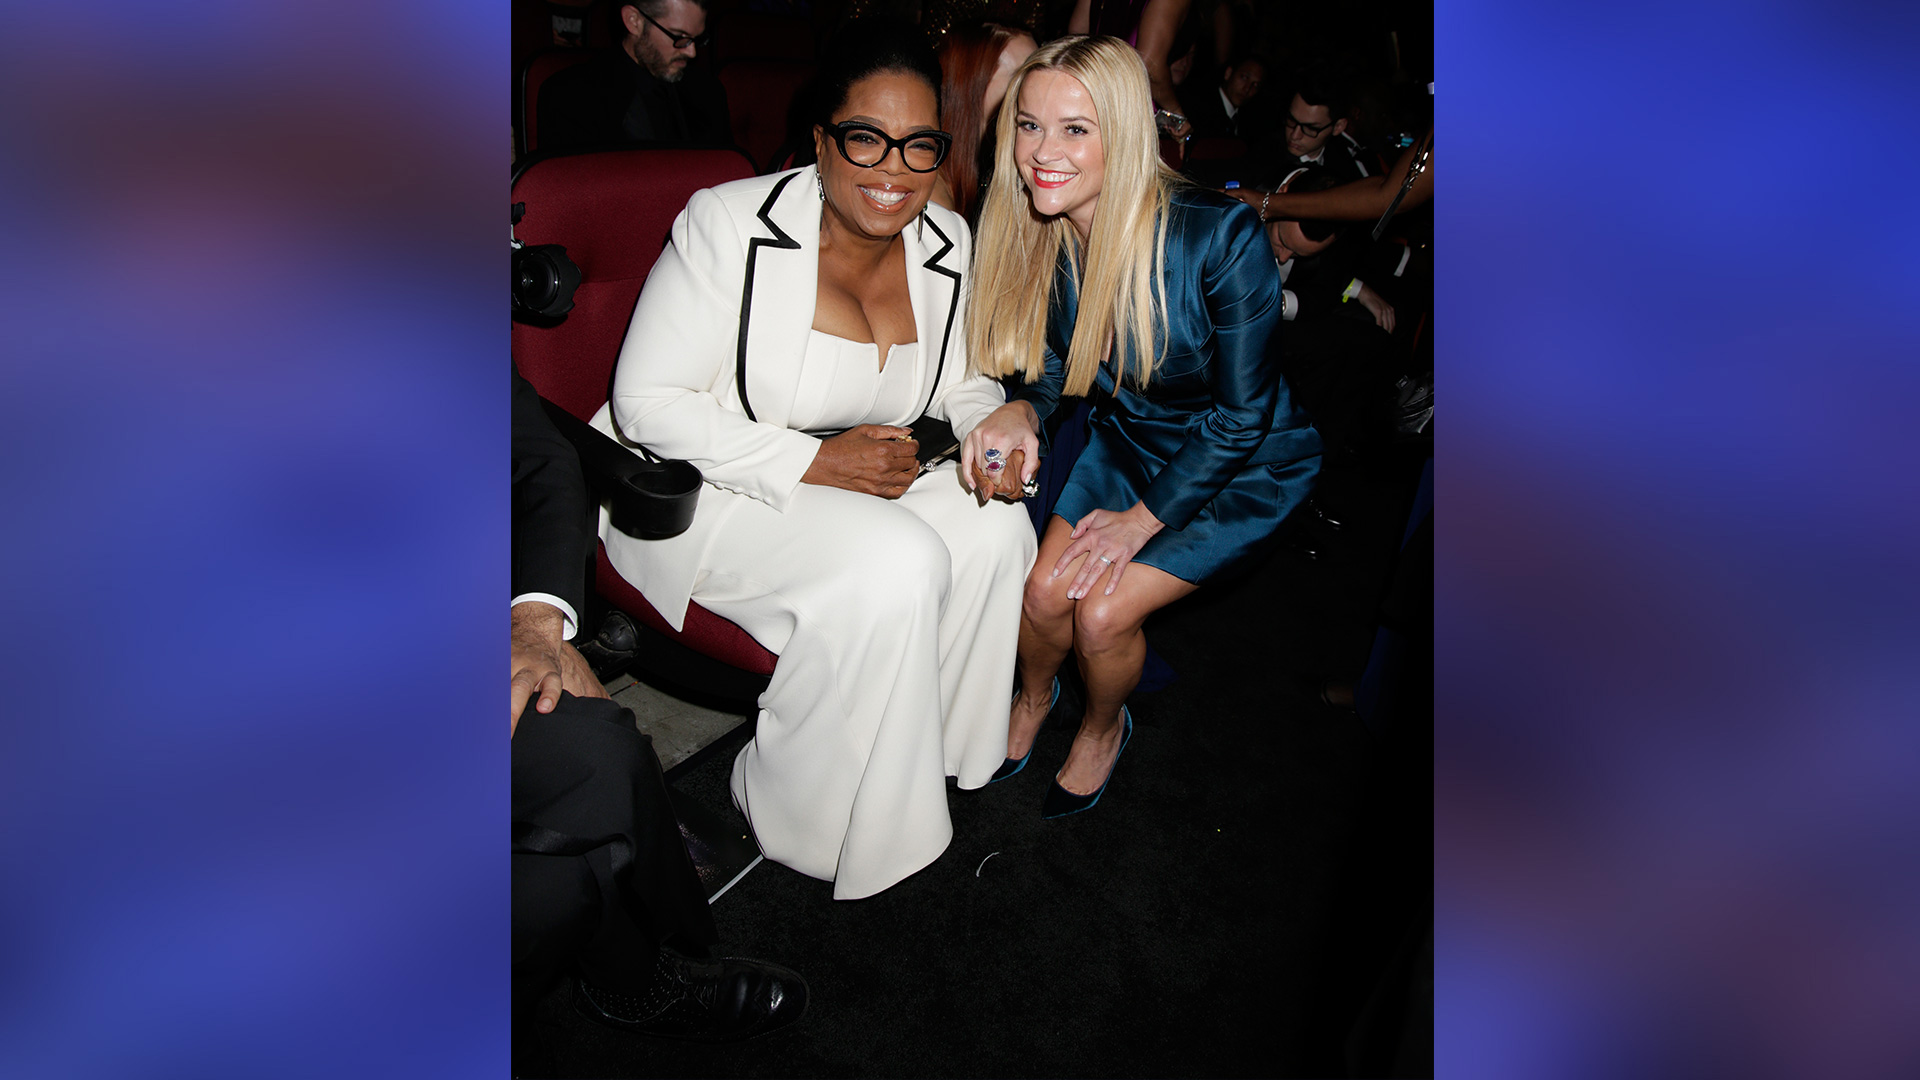 Emmy presenters Oprah Winfrey and Reese Witherspoon hold hands in the crowd.